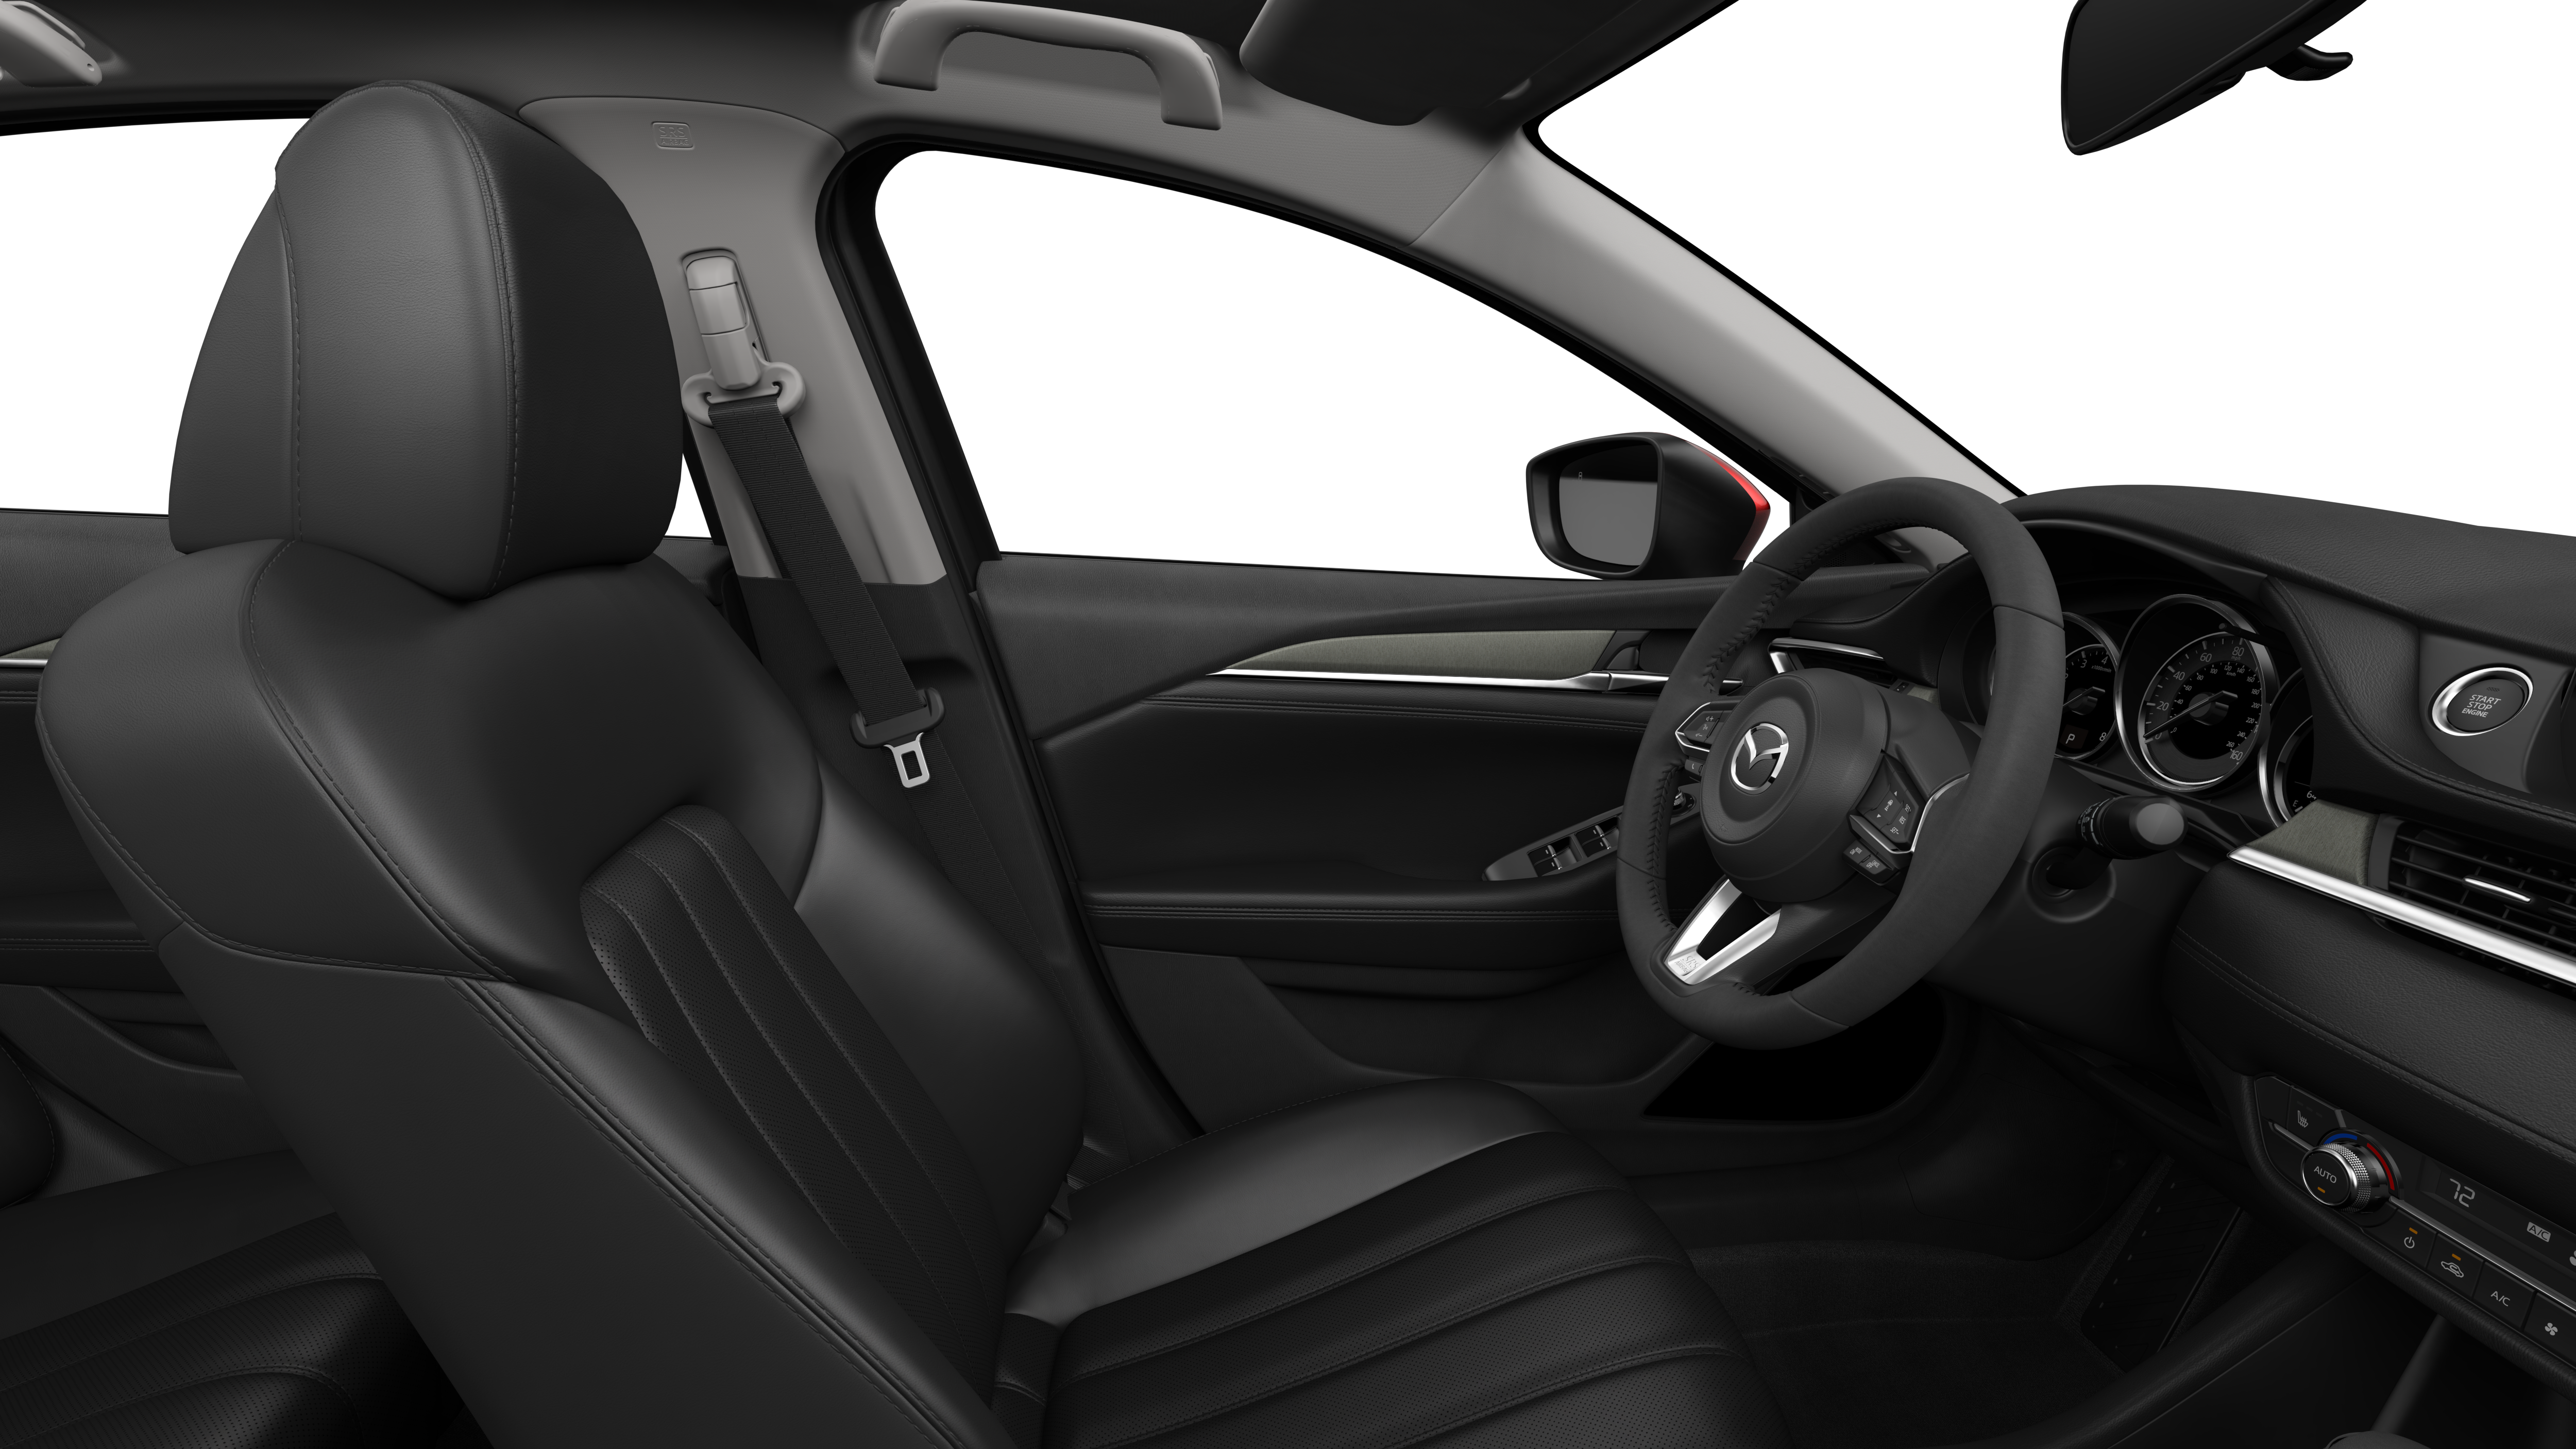 2018 Mazda6, Black Leather